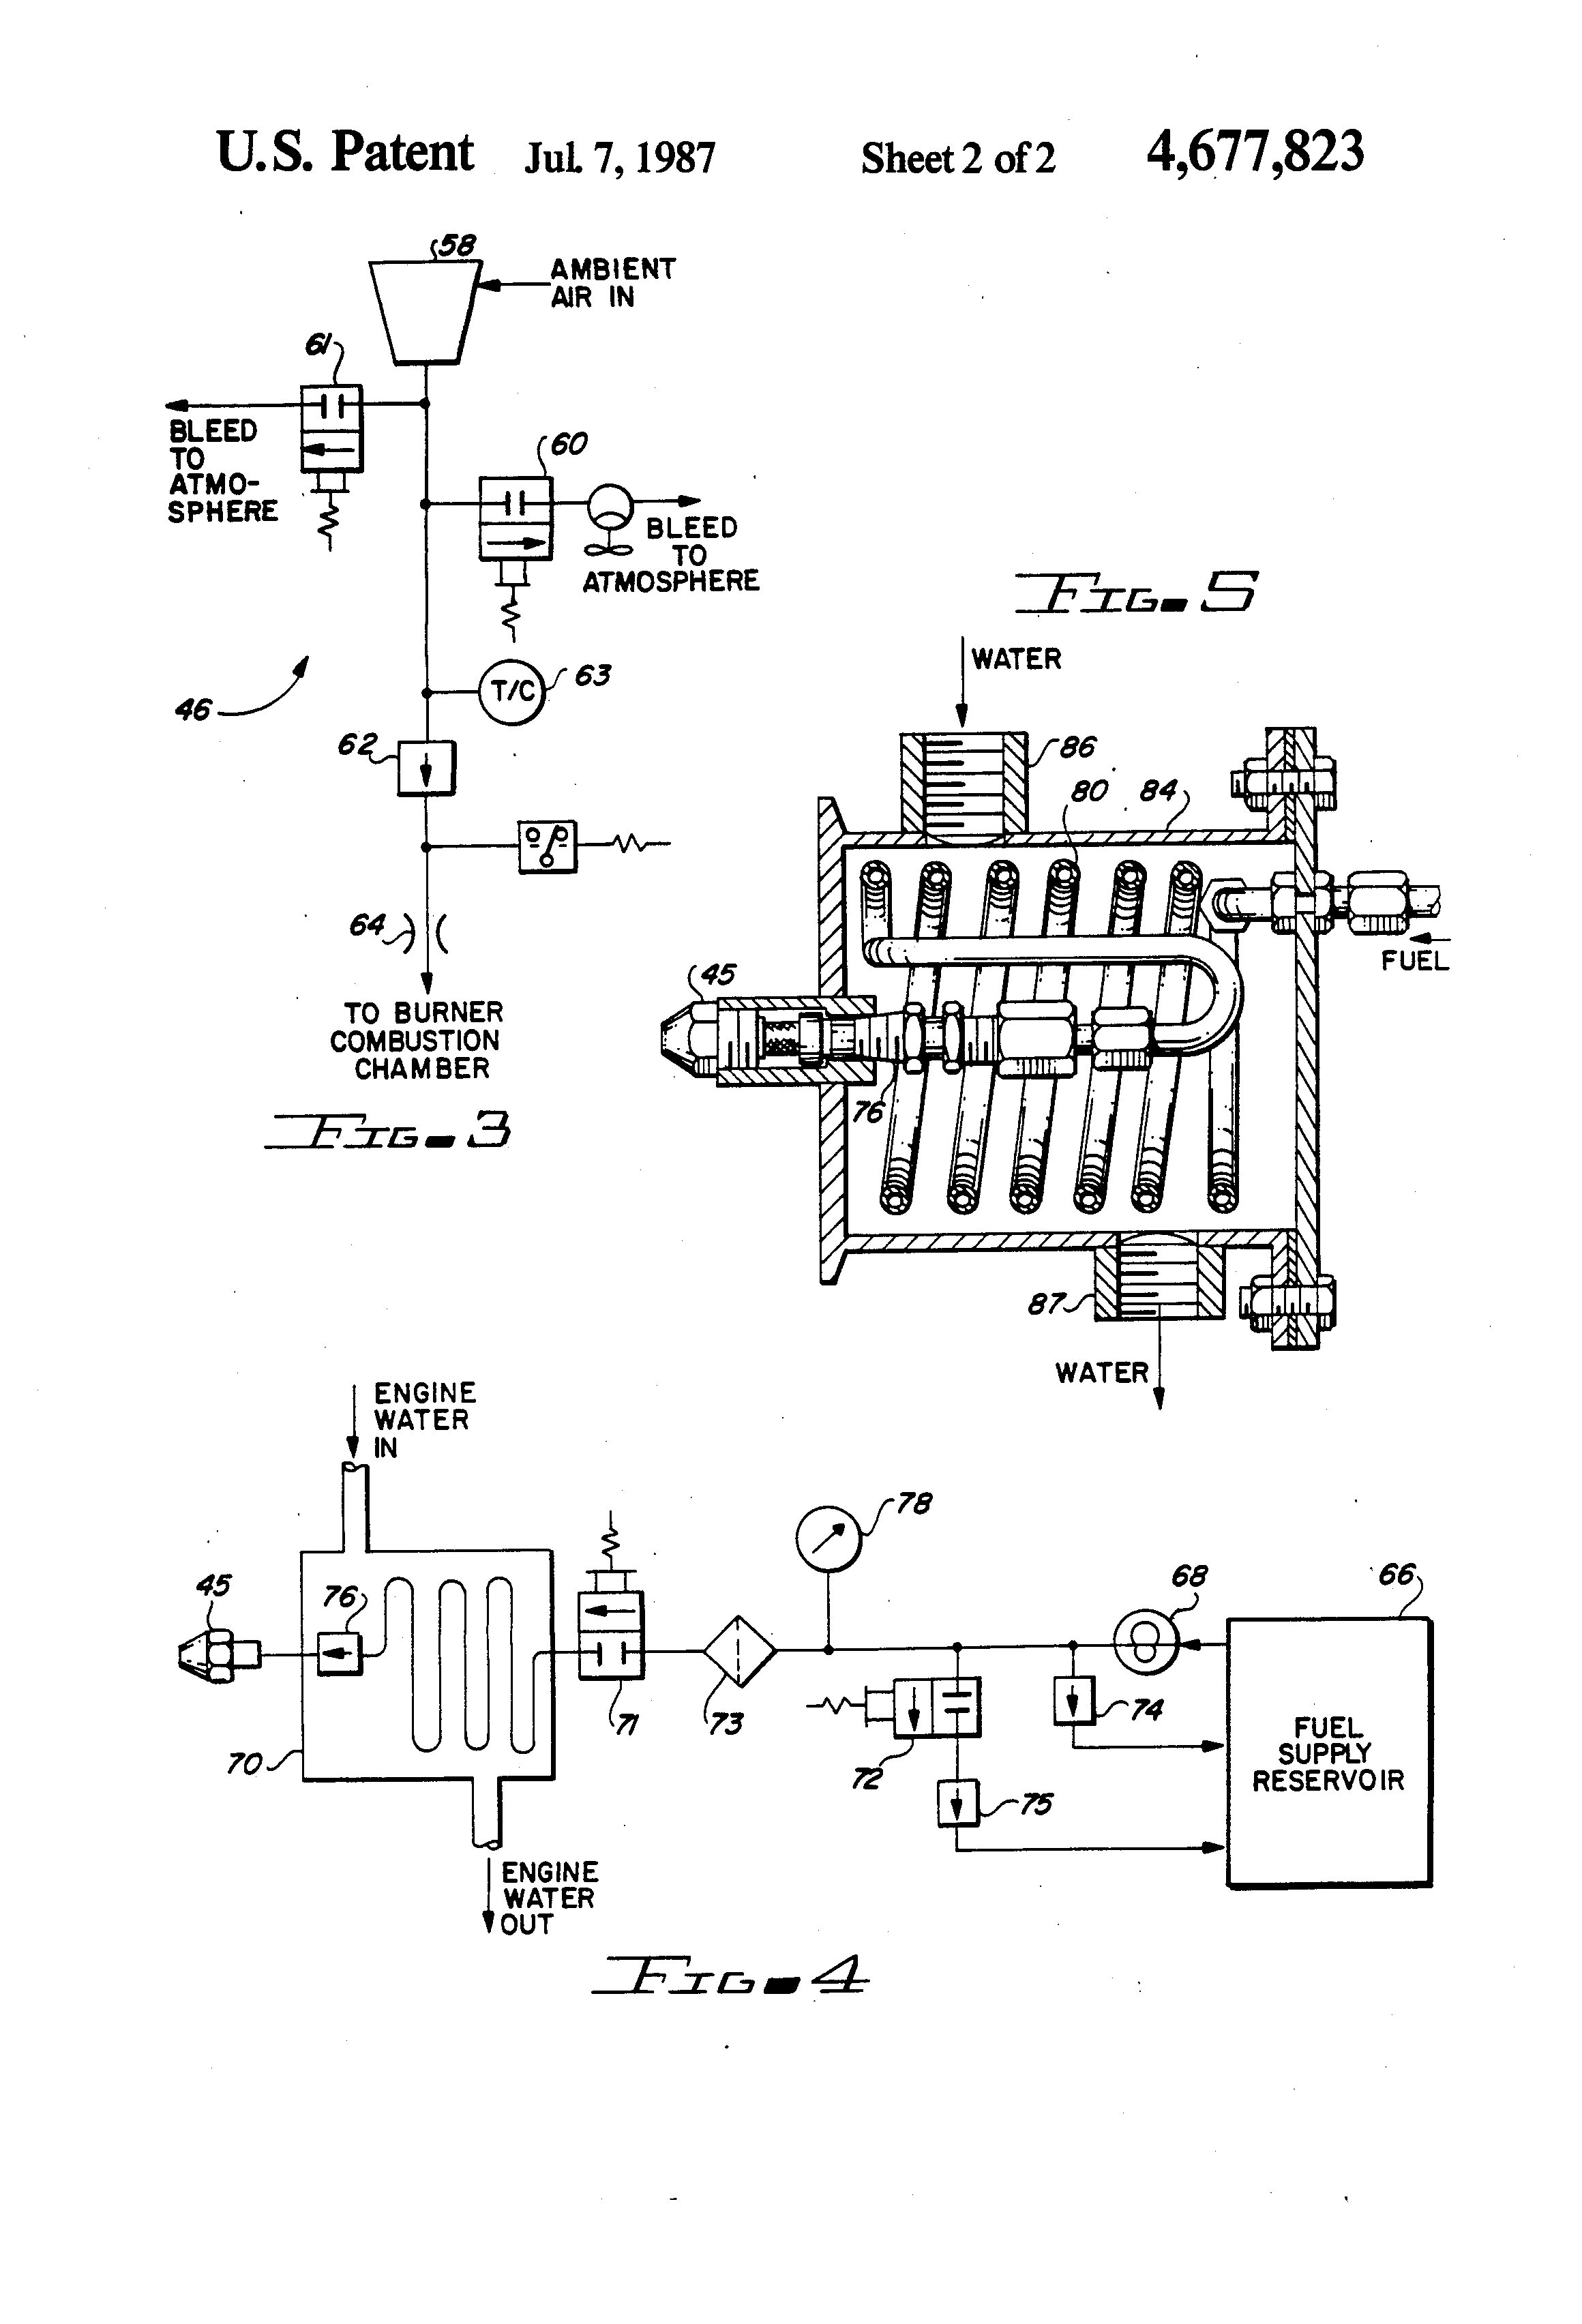 burner combustion controls